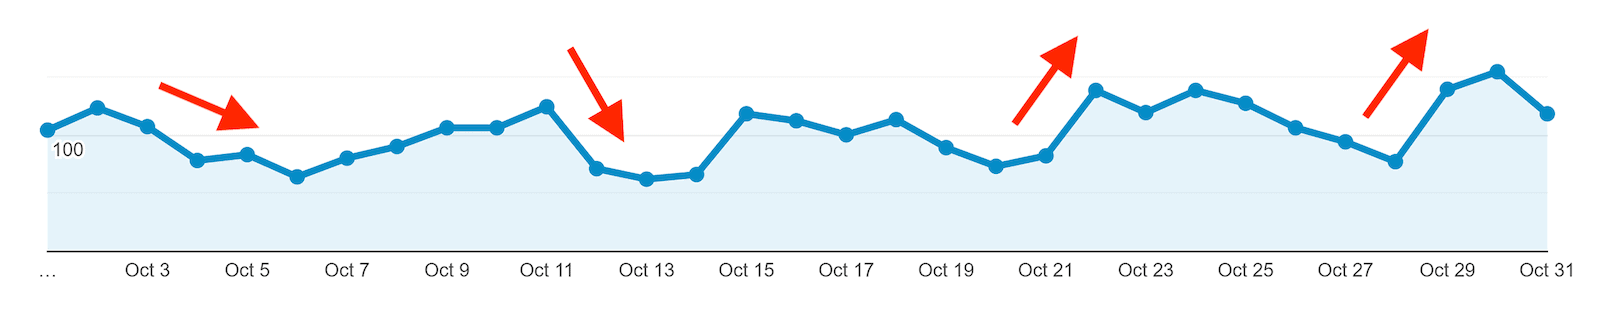 Spikes and dips in one-month traffic